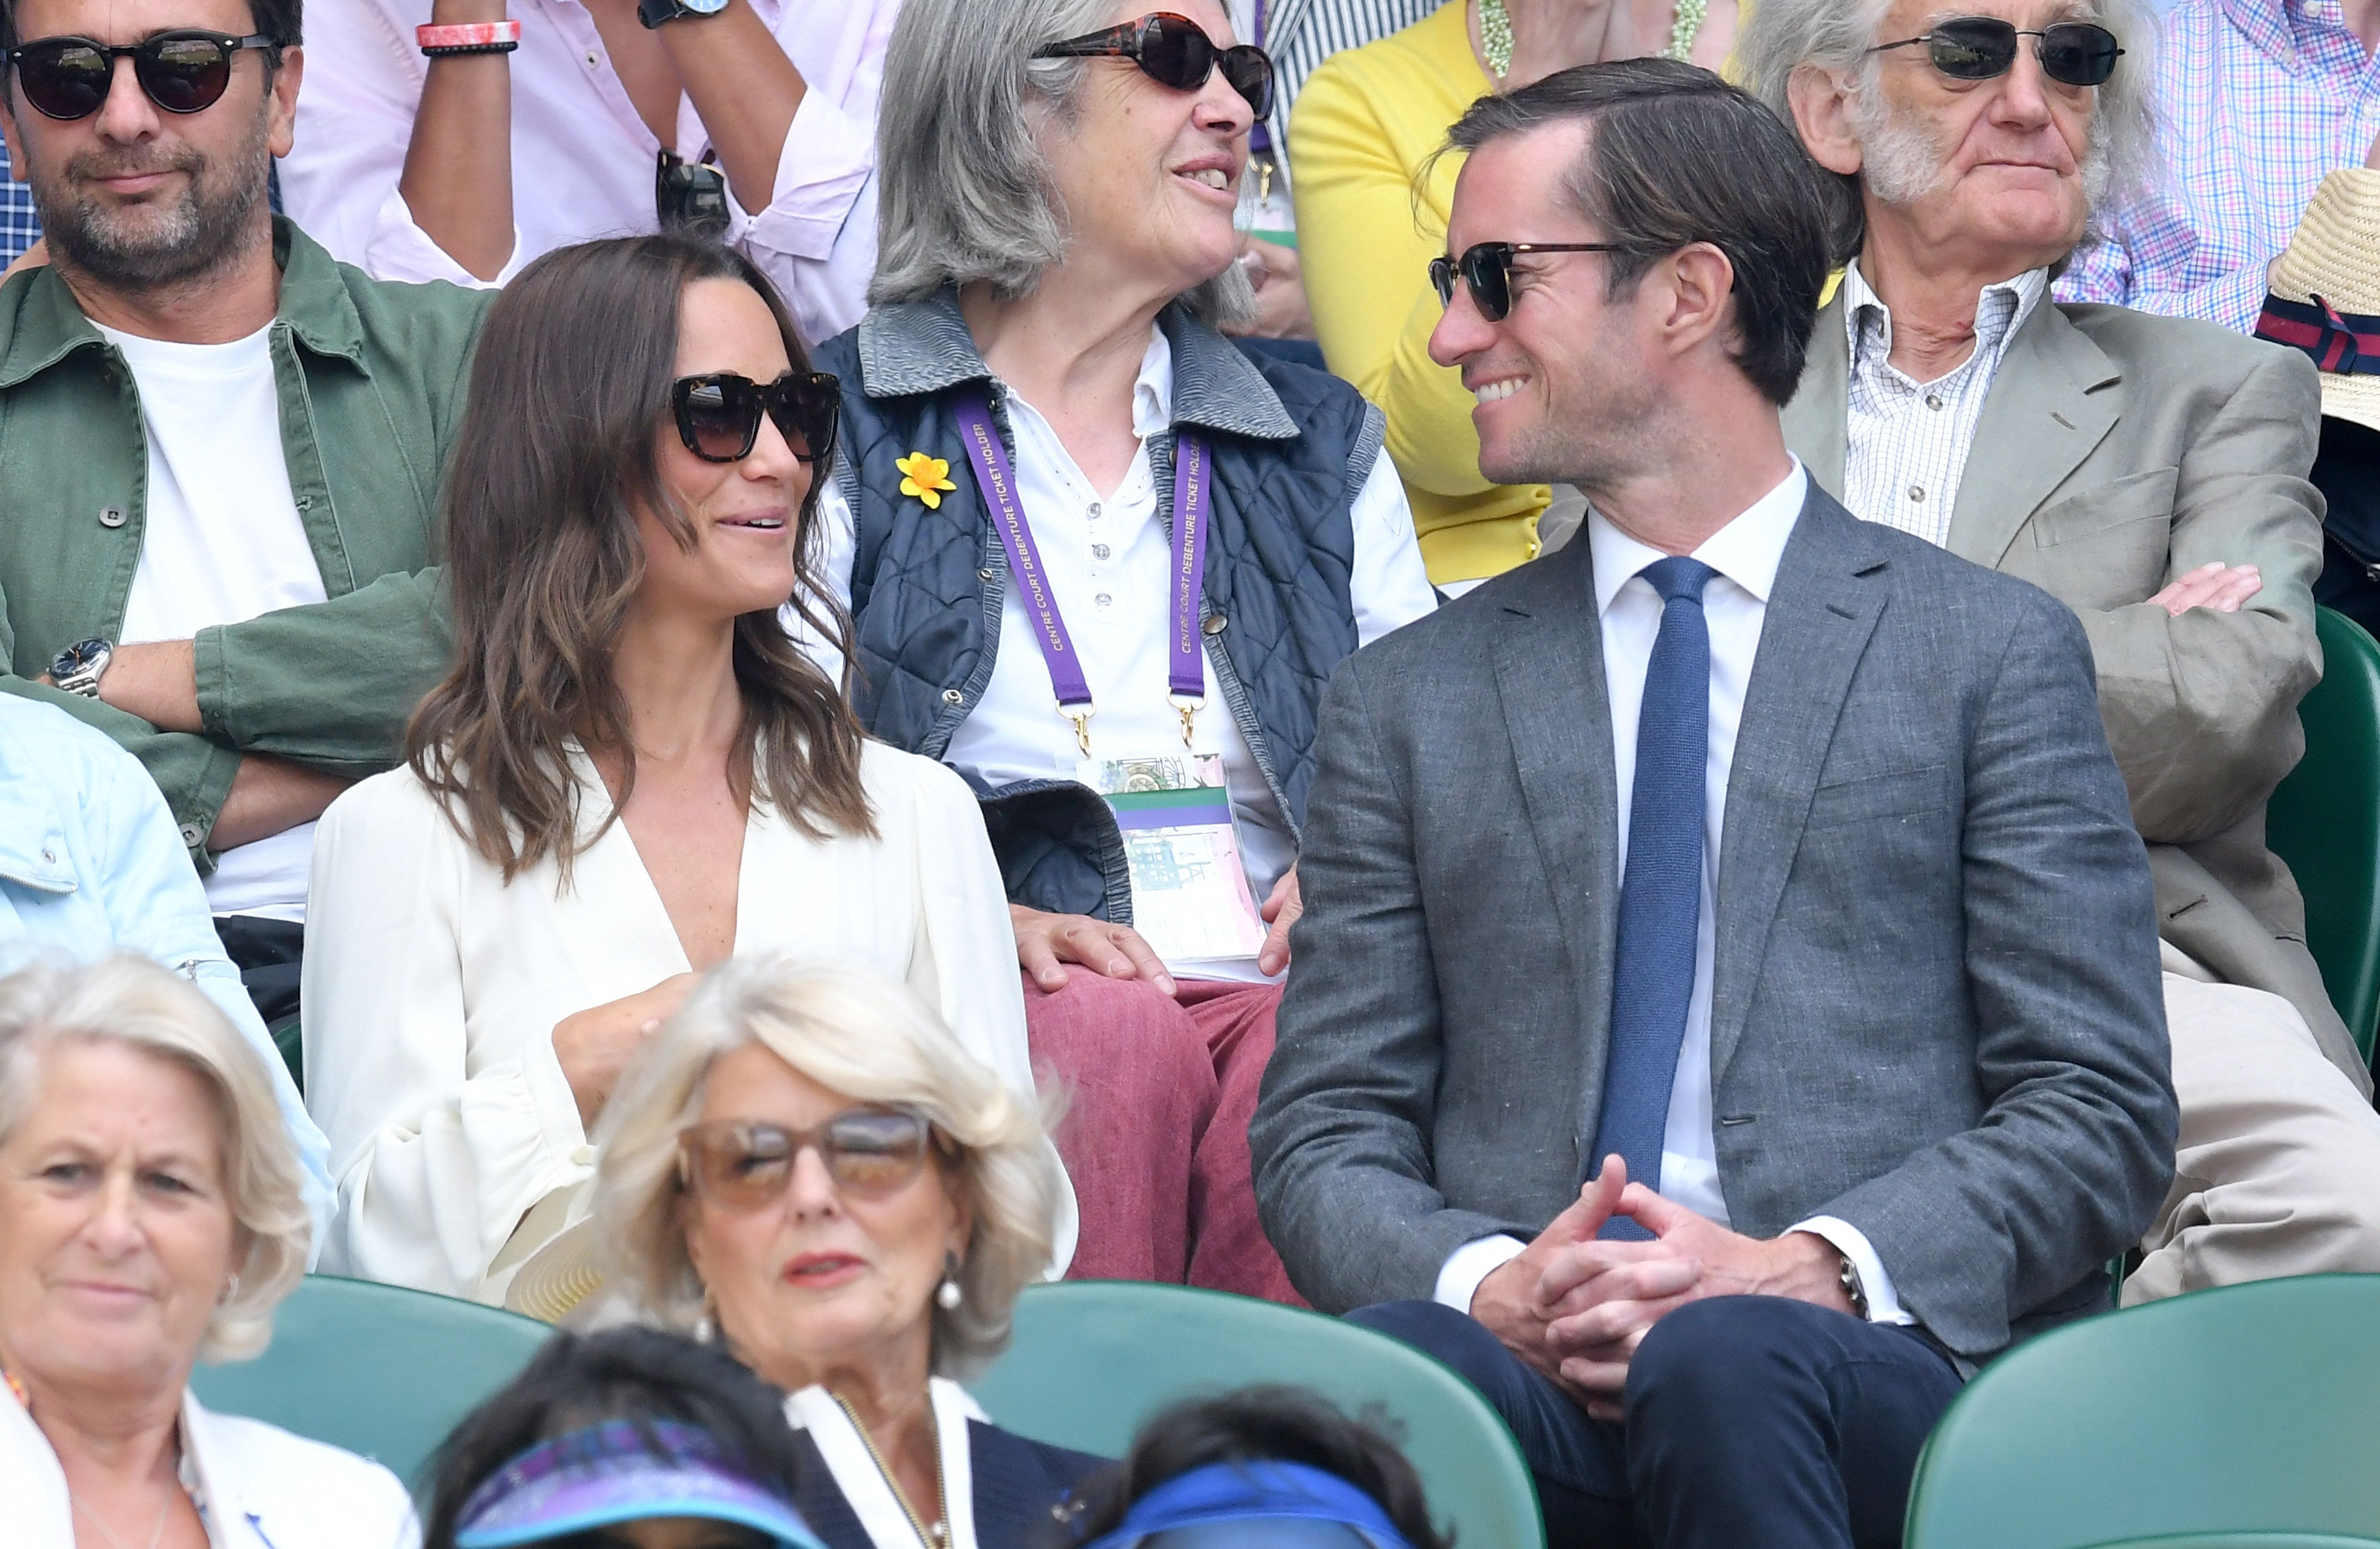 Pippa Middleton and James Matthews attend day 11 of Wimbledon 2017 on 14 July 2017 in London,